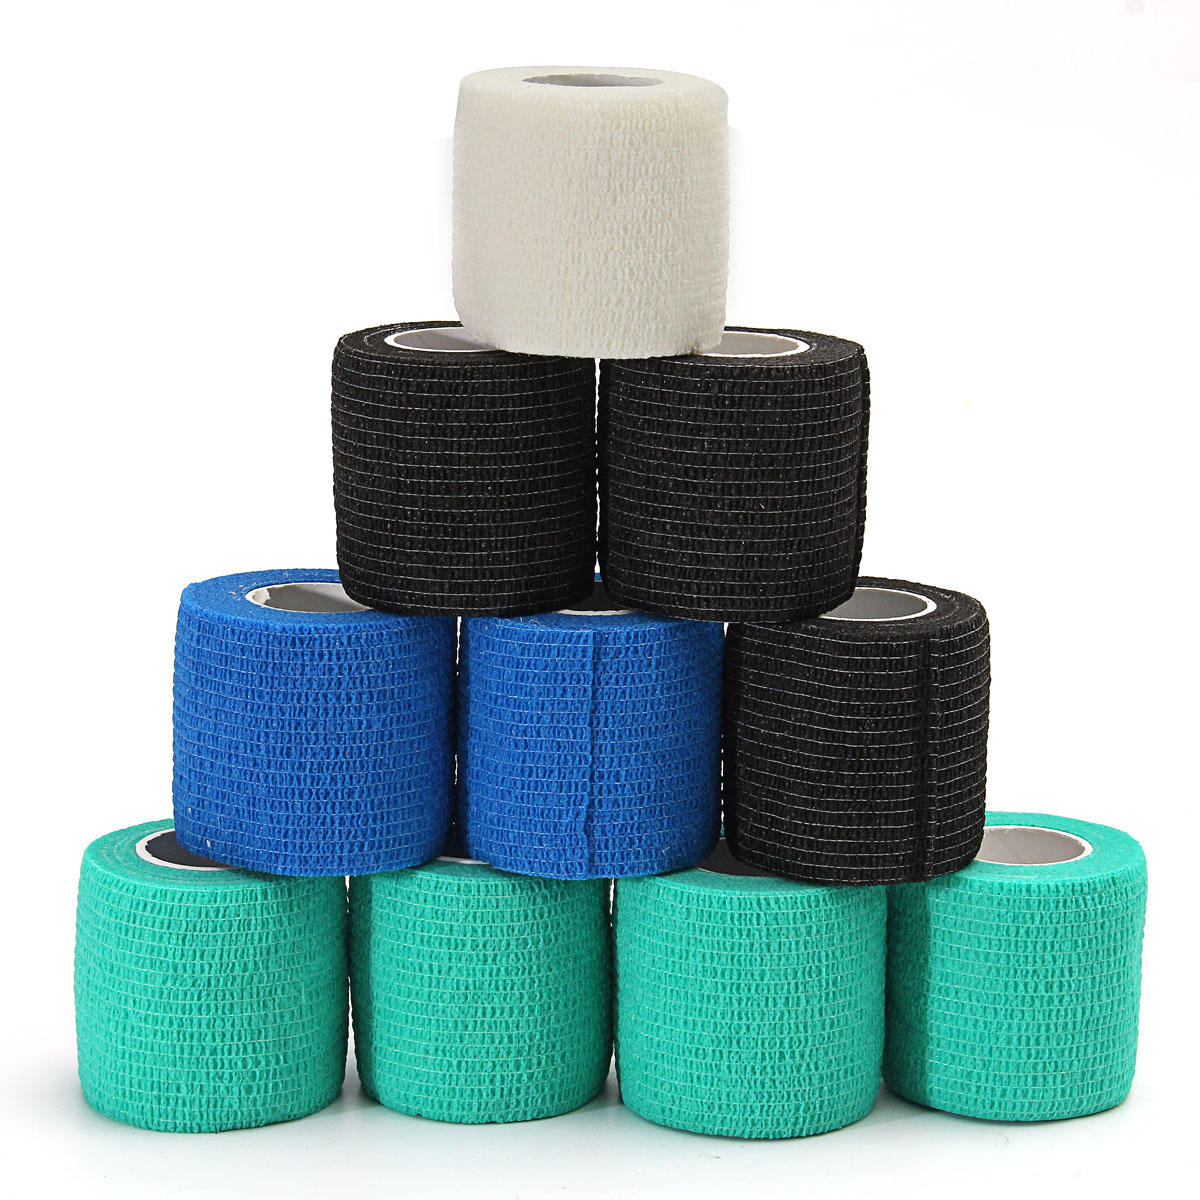 Premium Tattoo Self-adhesive Non-Woven Elastic Bandages Grip Cover First Aid Kit Cohesive Sports Protect Tool 4.5m X5cm